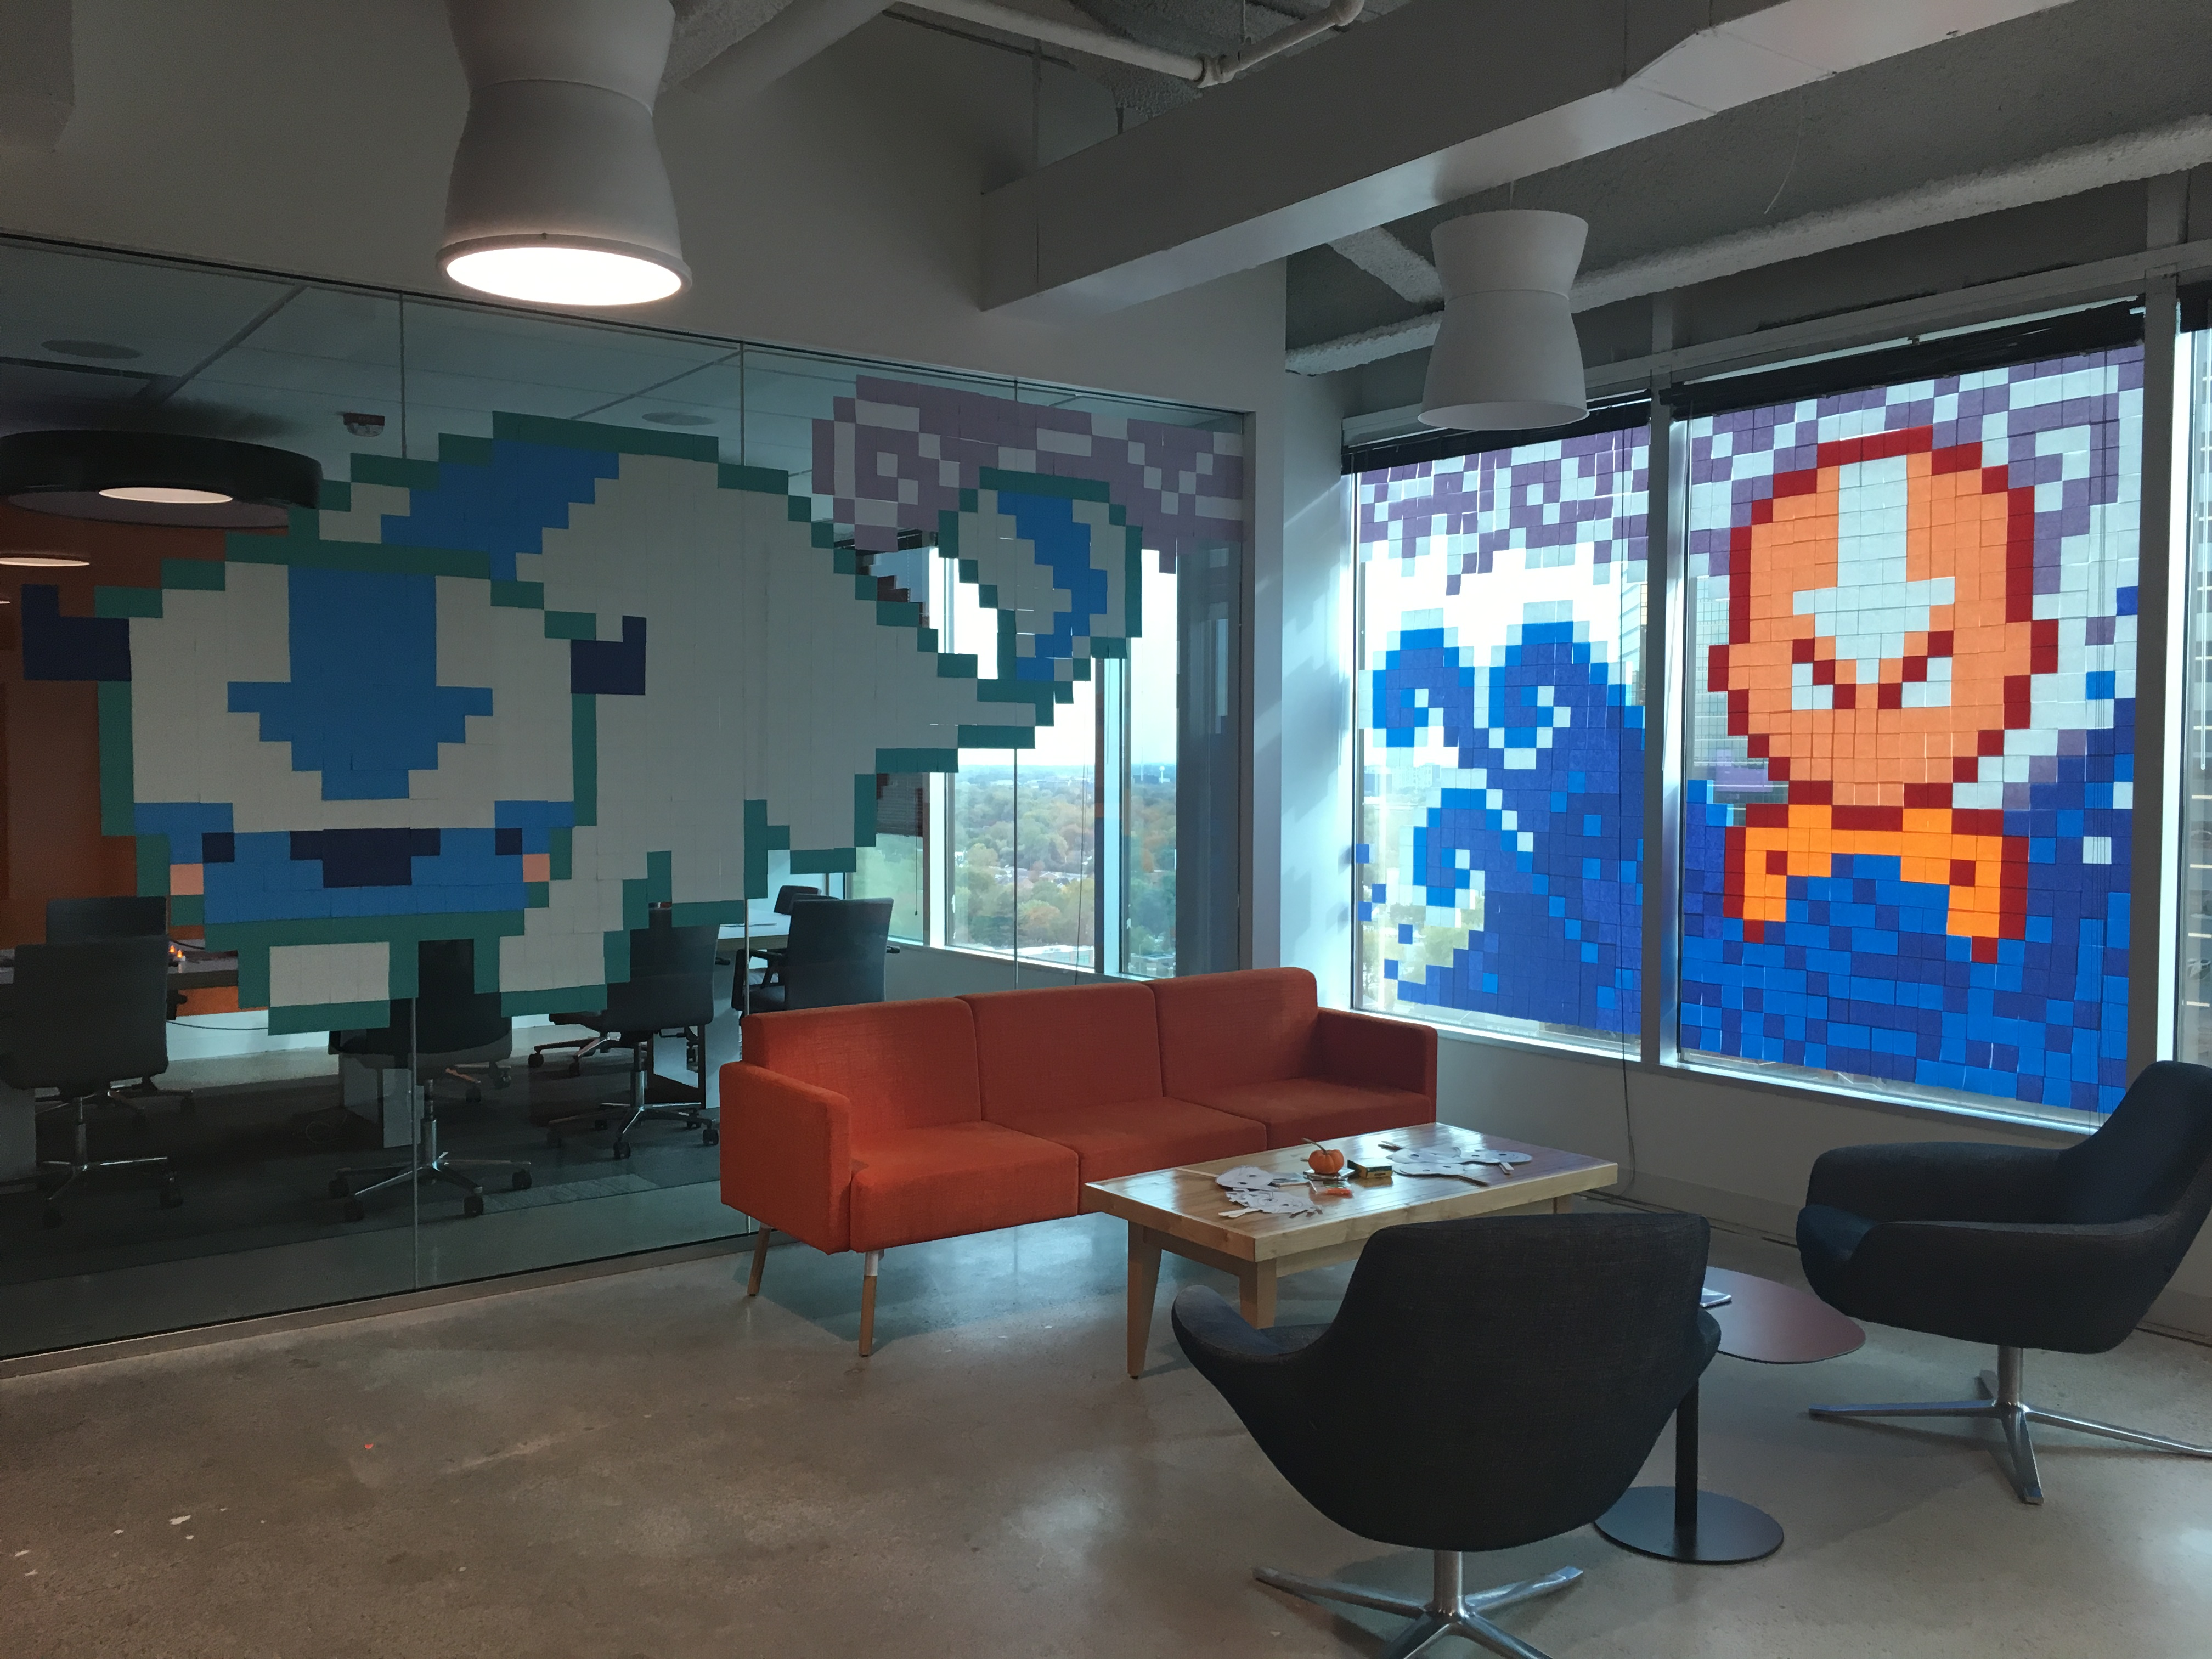 Halloween Decorating with Post It Notes